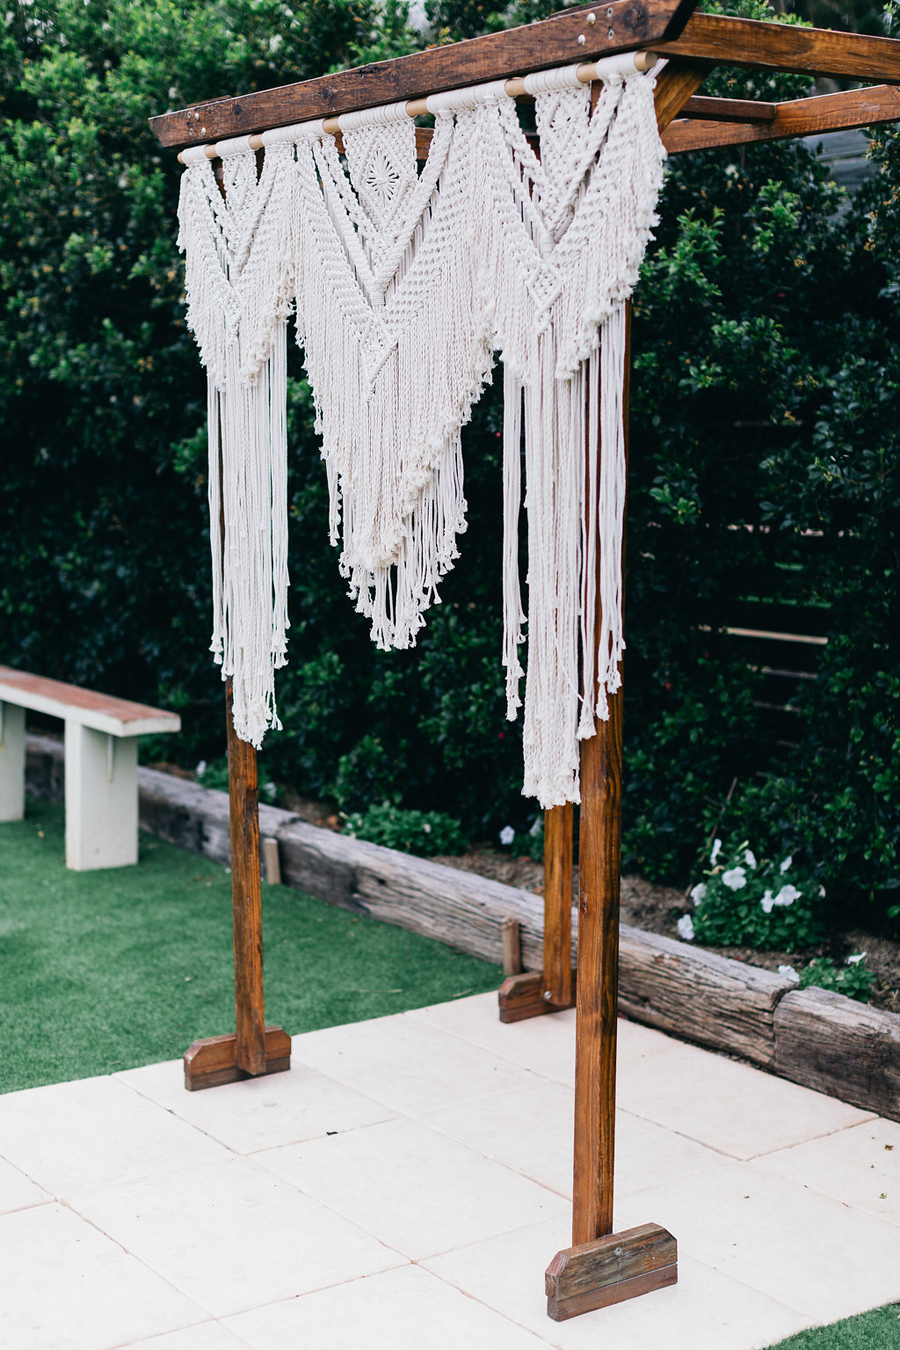 tweed-coast-weddings-wedding-venue-osteria-casuarina-figtree-pictures-photography-brittney-and-justin019.jpg